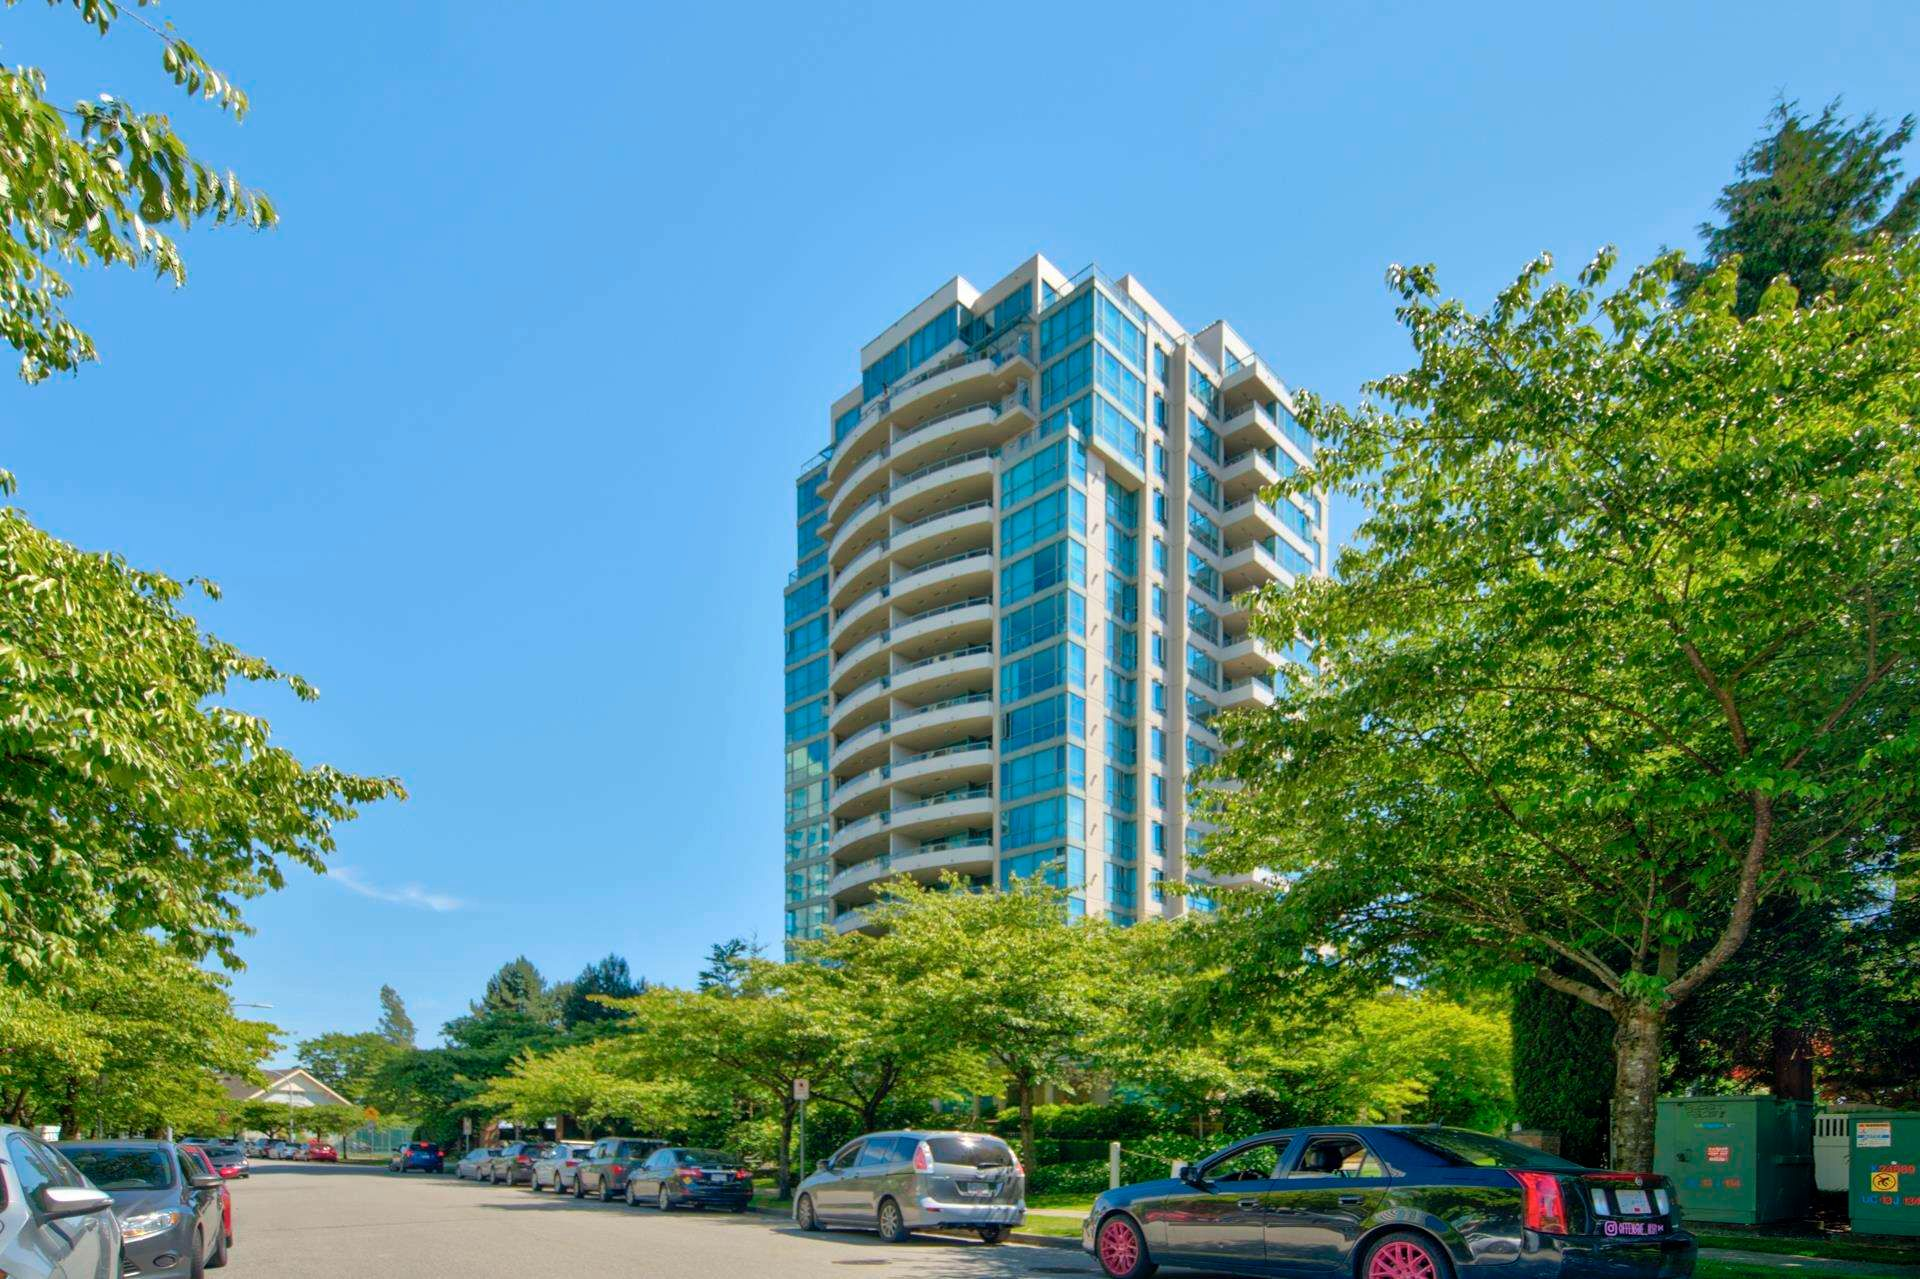 Main Photo: 1601 6622 SOUTHOAKS CRESCENT in Burnaby: Highgate Condo for sale (Burnaby South)  : MLS®# R2596768